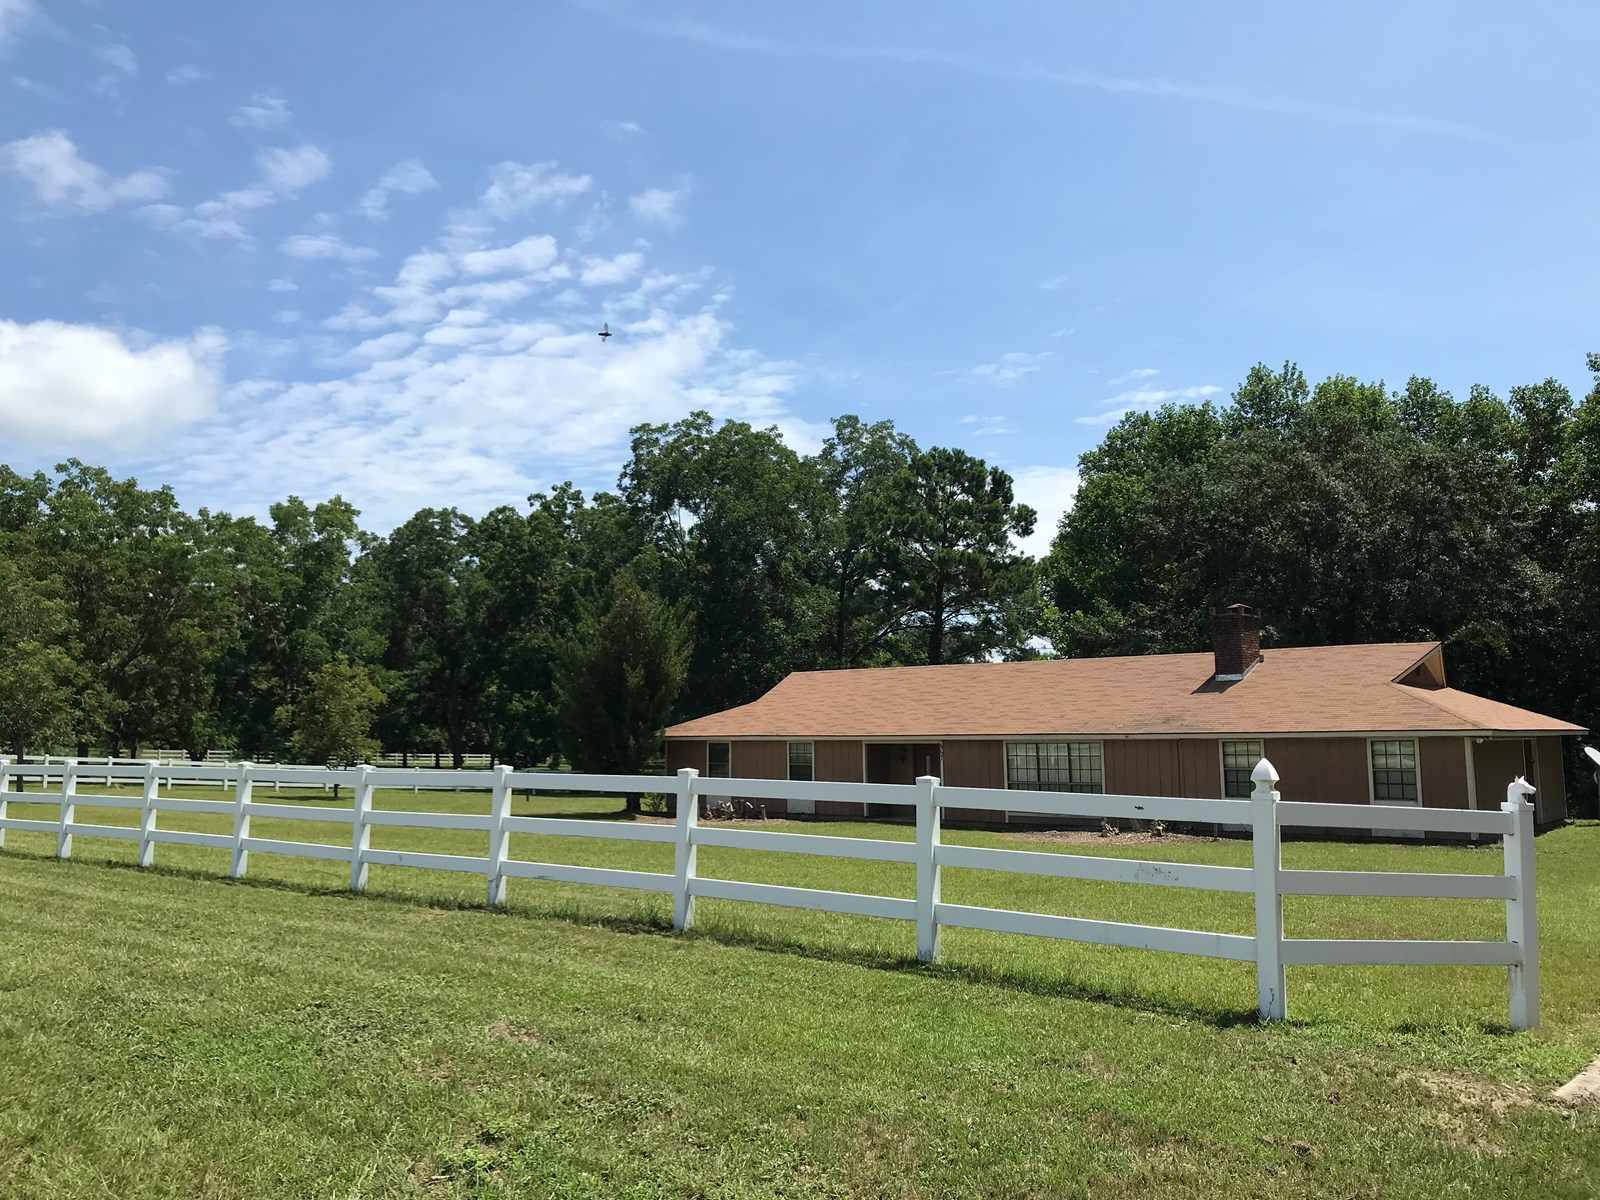 COUNTRY HOME 3B/3B ON 7.6 ACRES FENCED SAMSON, ALABAMA